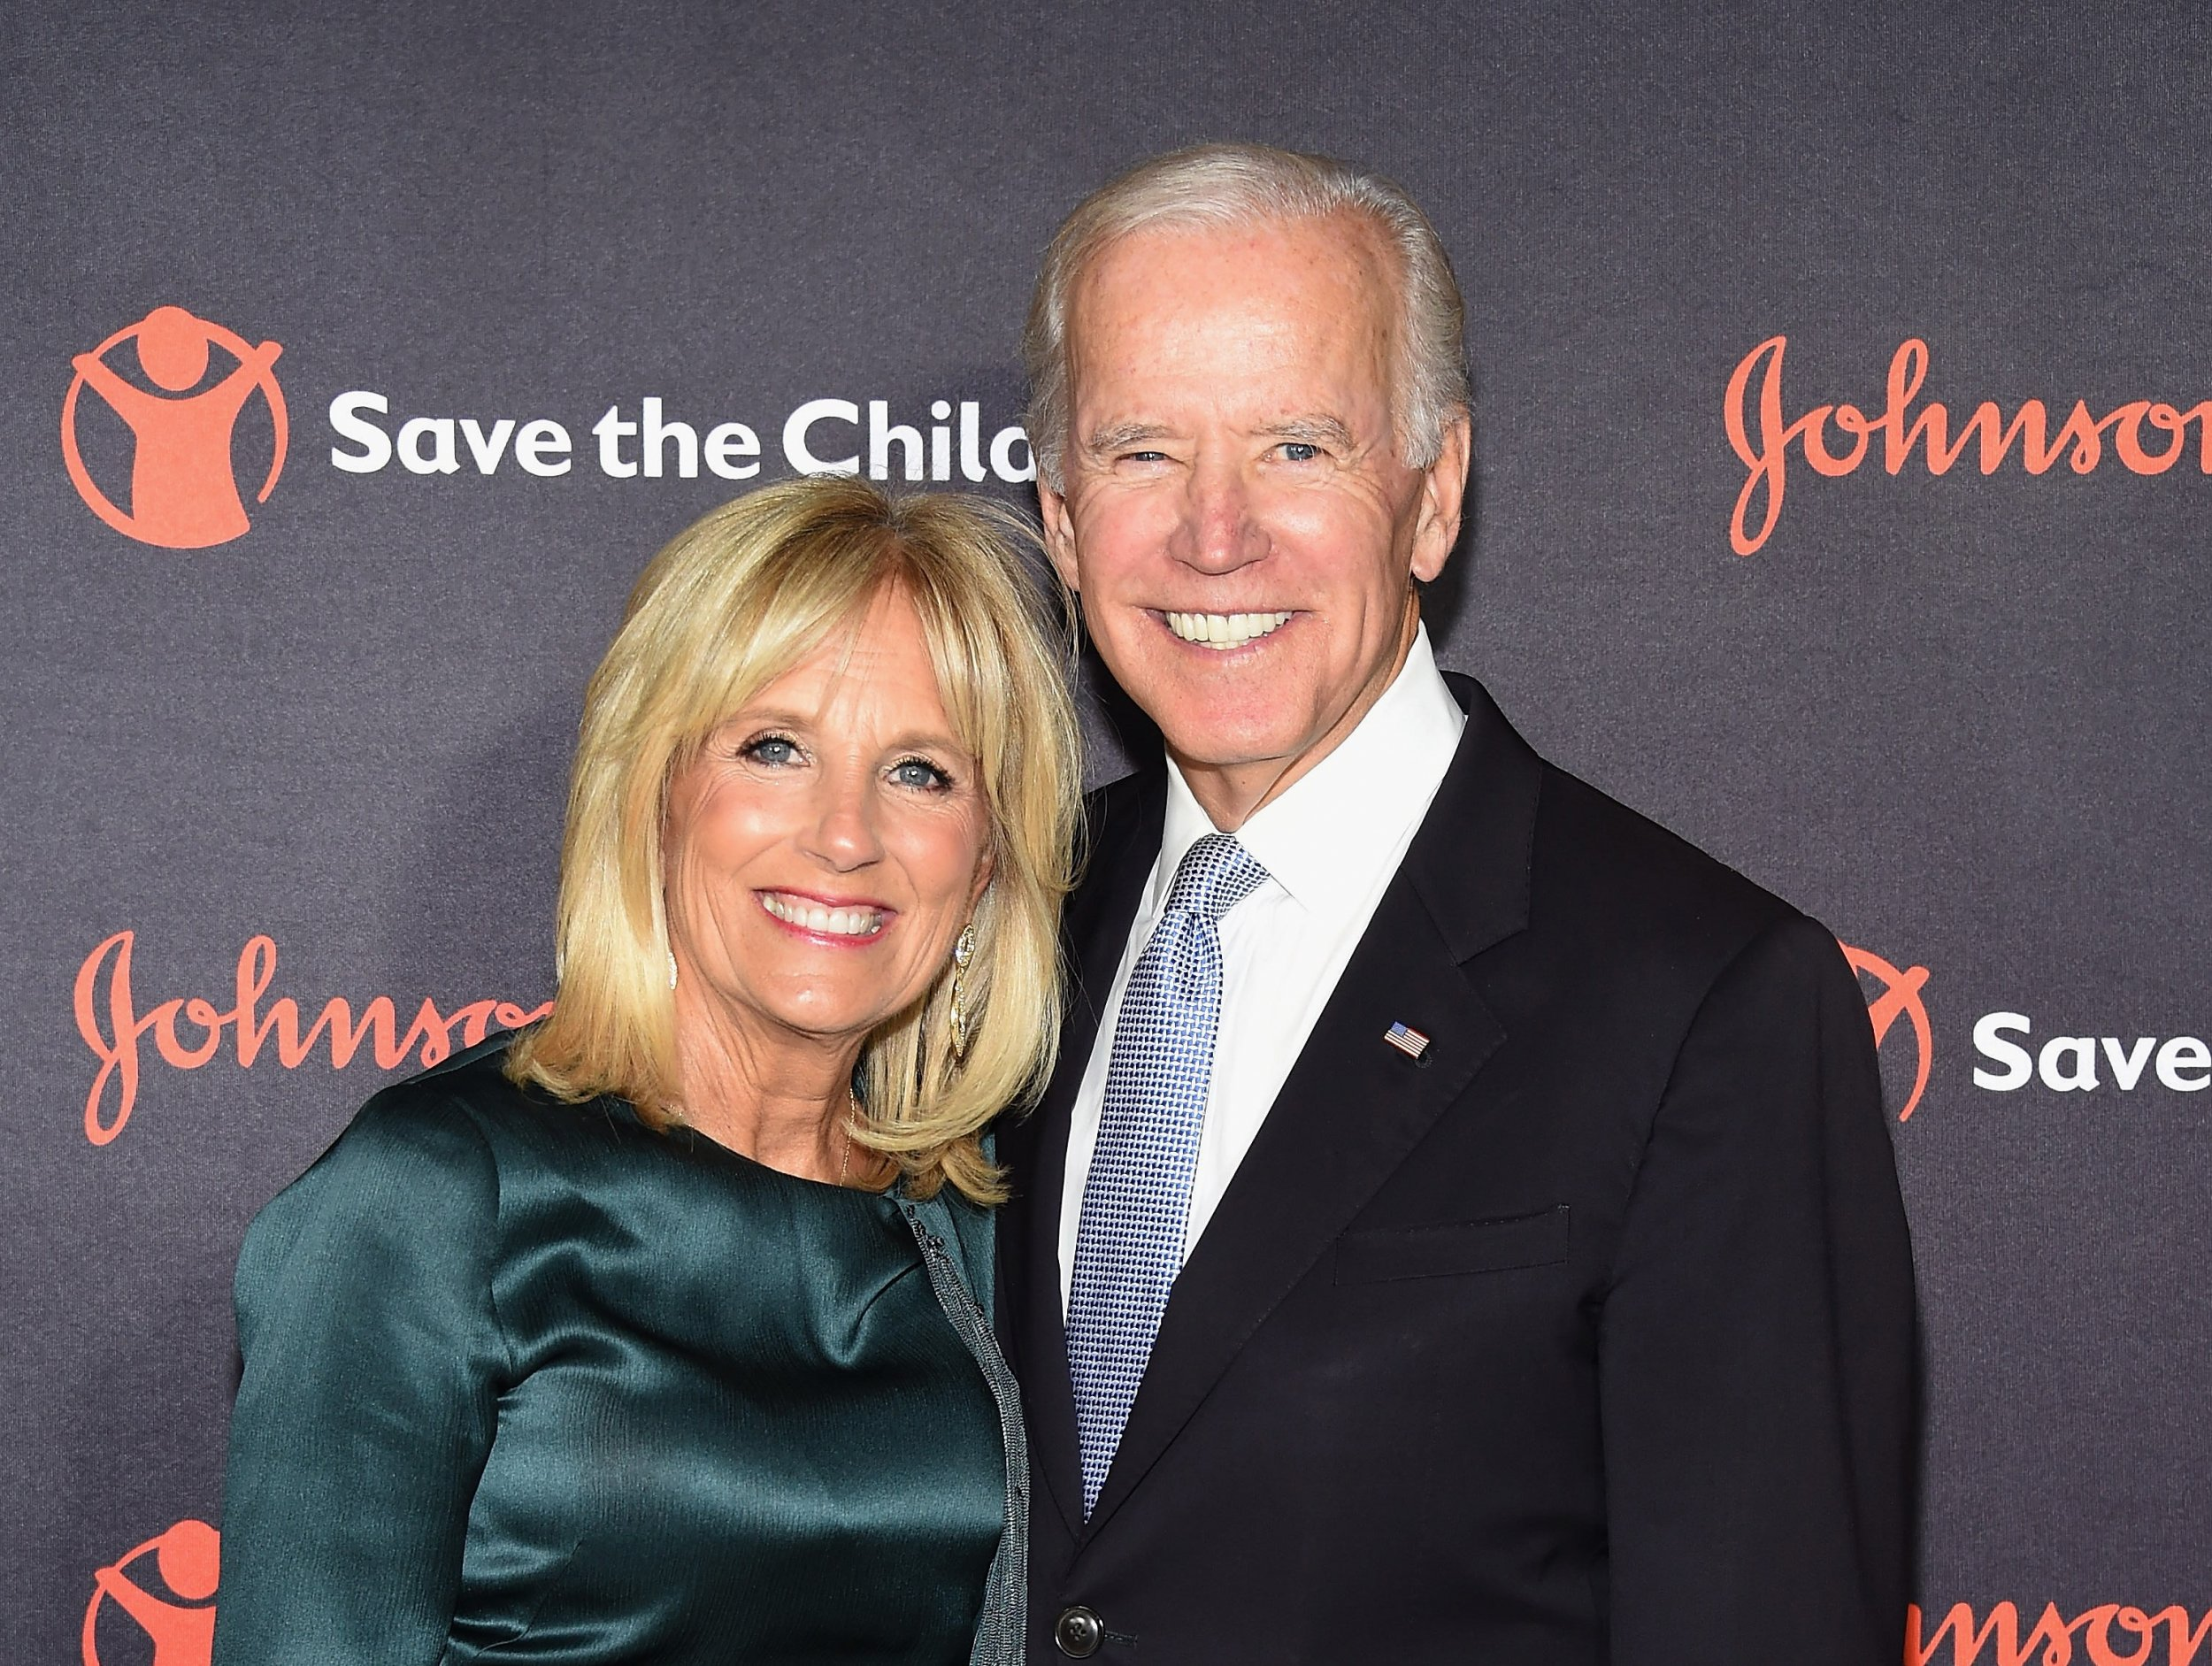 Who Is Jill Biden? Former Vice President's Wife 'Excited and Proud